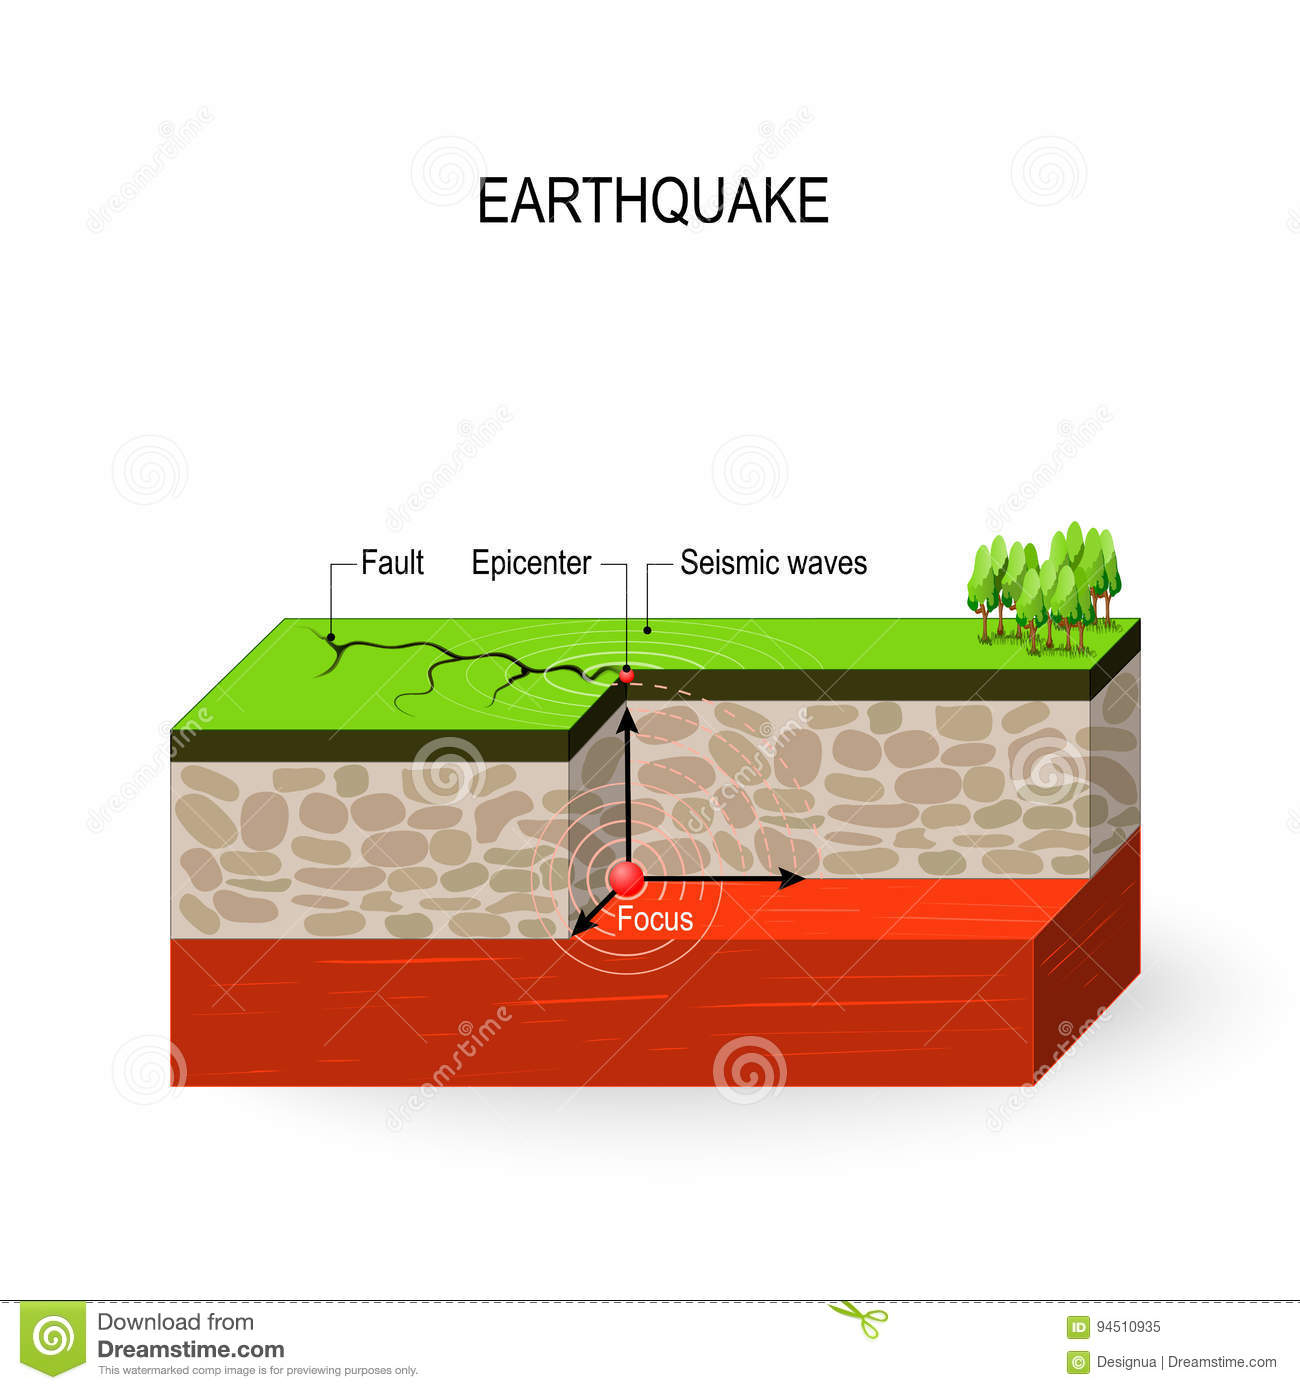 earthquake cartoons illustrations vector stock images 3220 pictures to download from. Black Bedroom Furniture Sets. Home Design Ideas